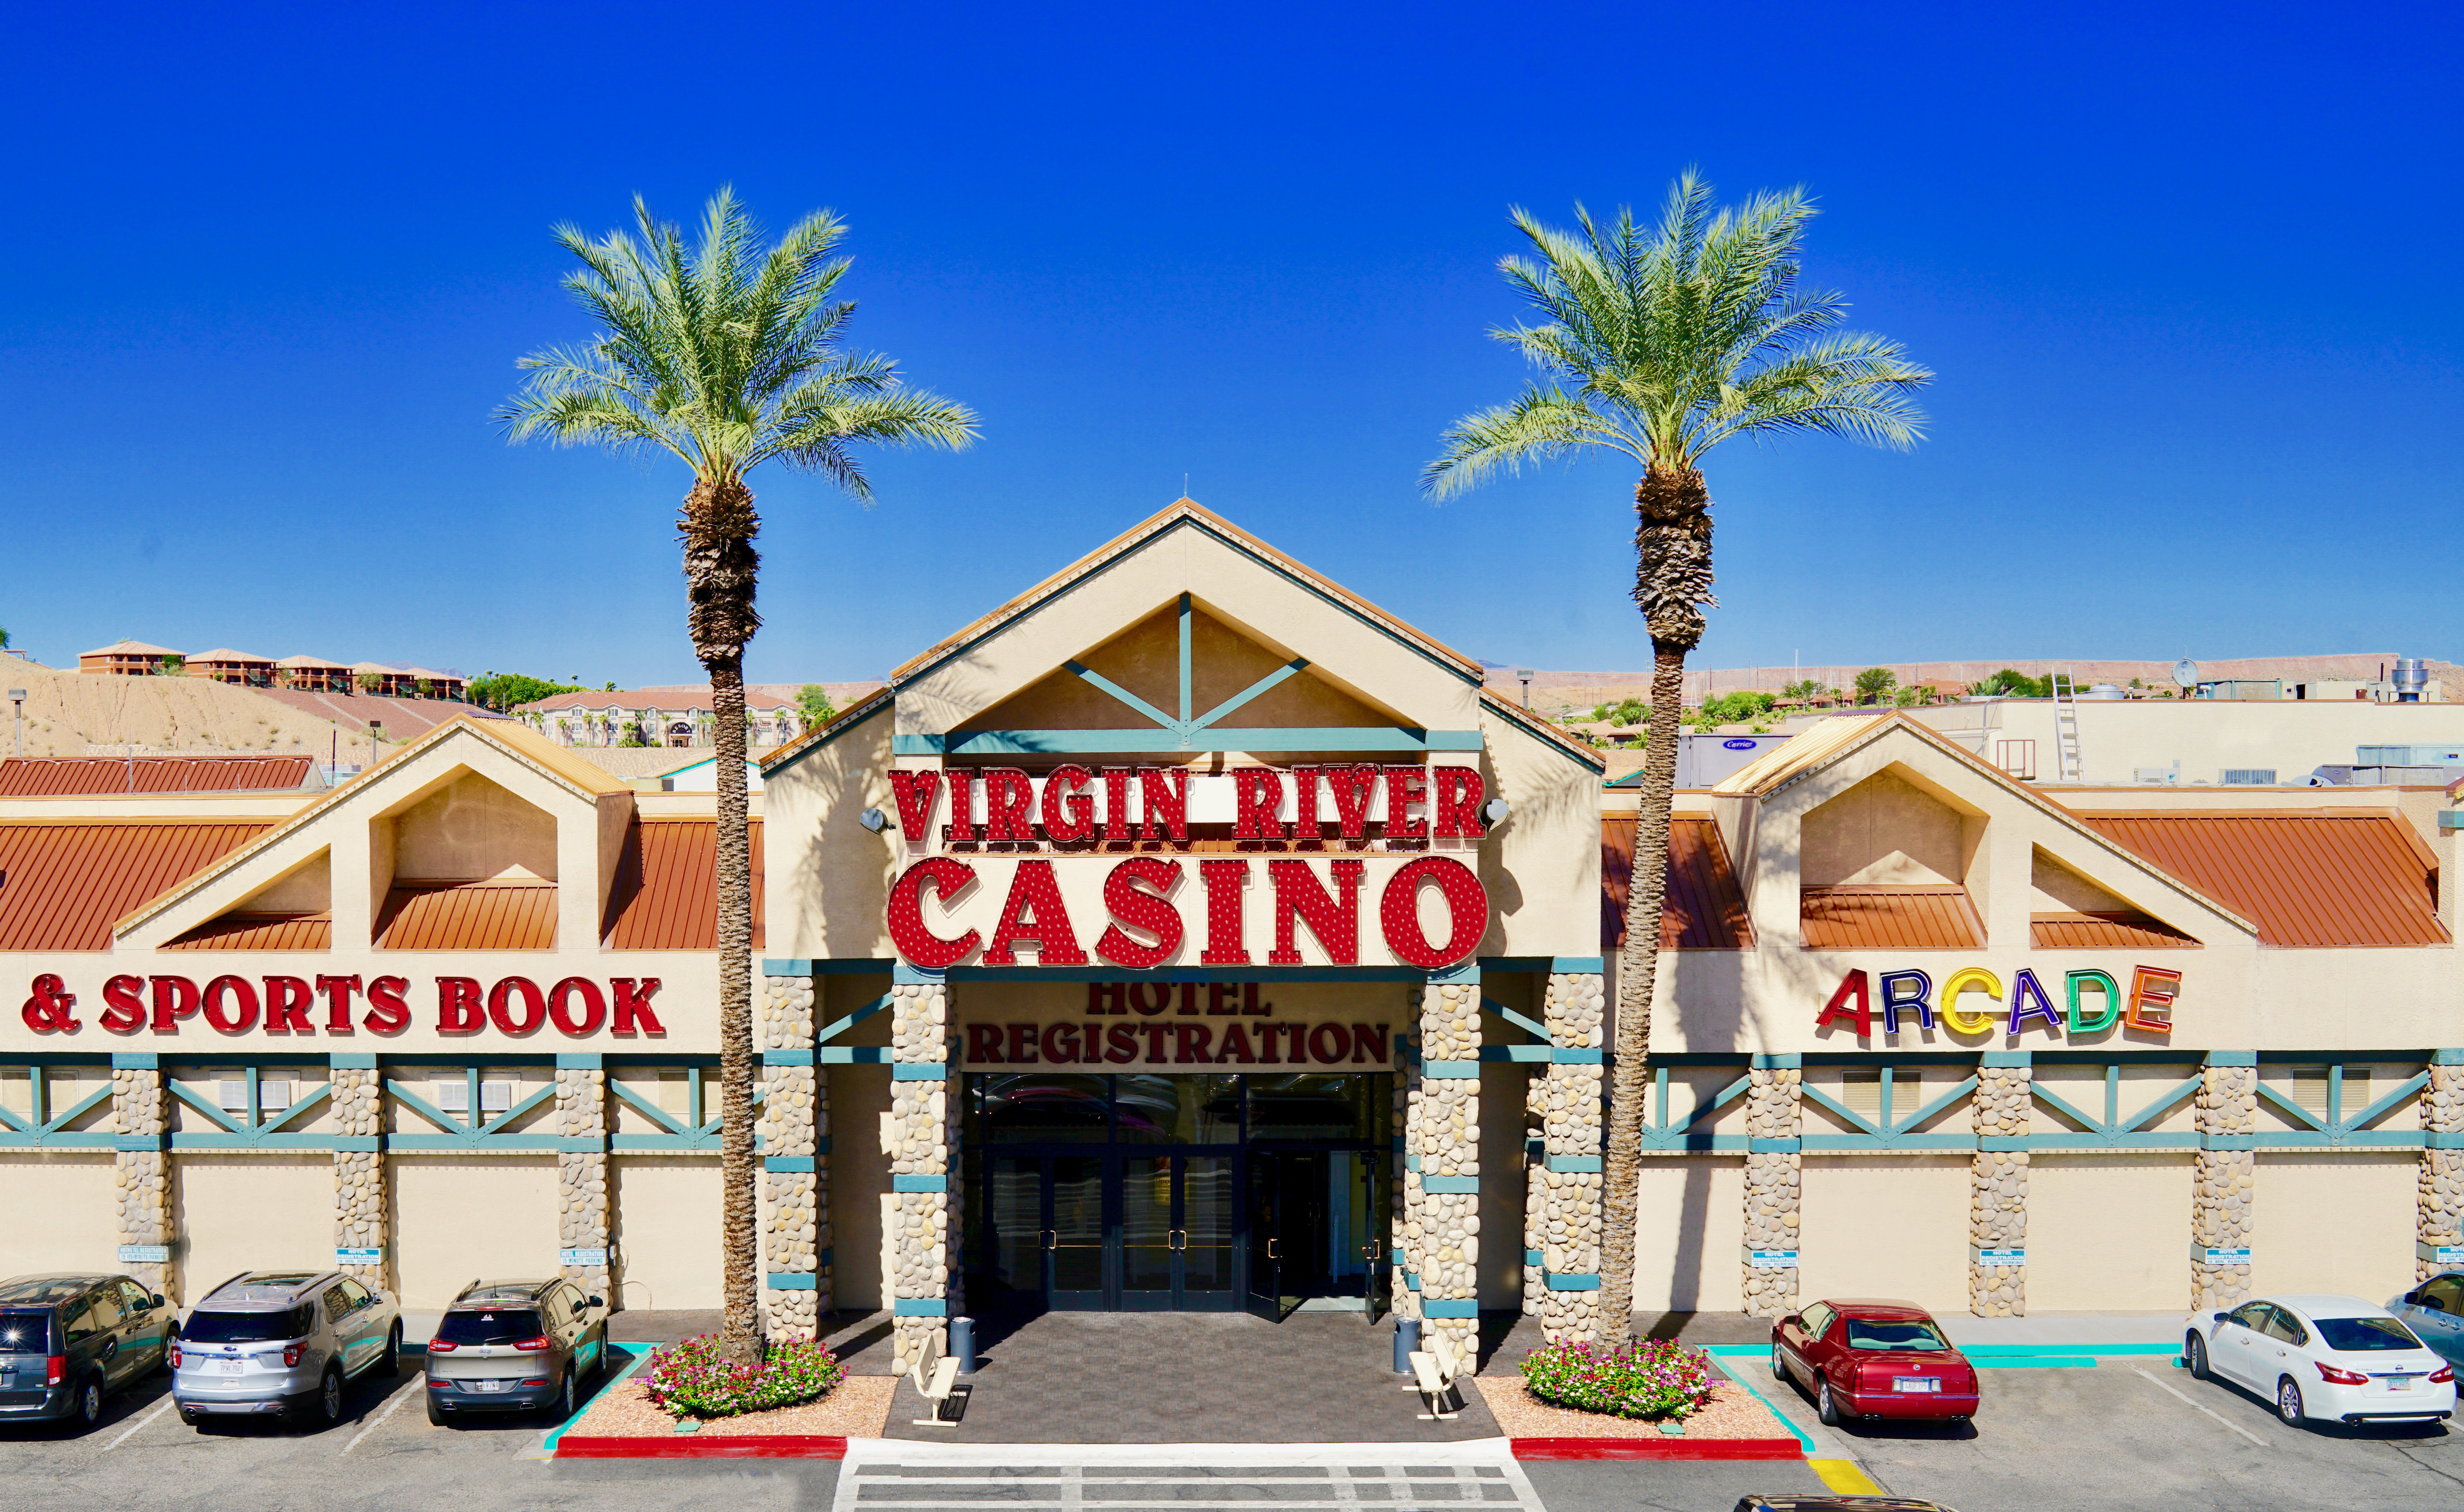 Clark county casino consequences of underage gambling